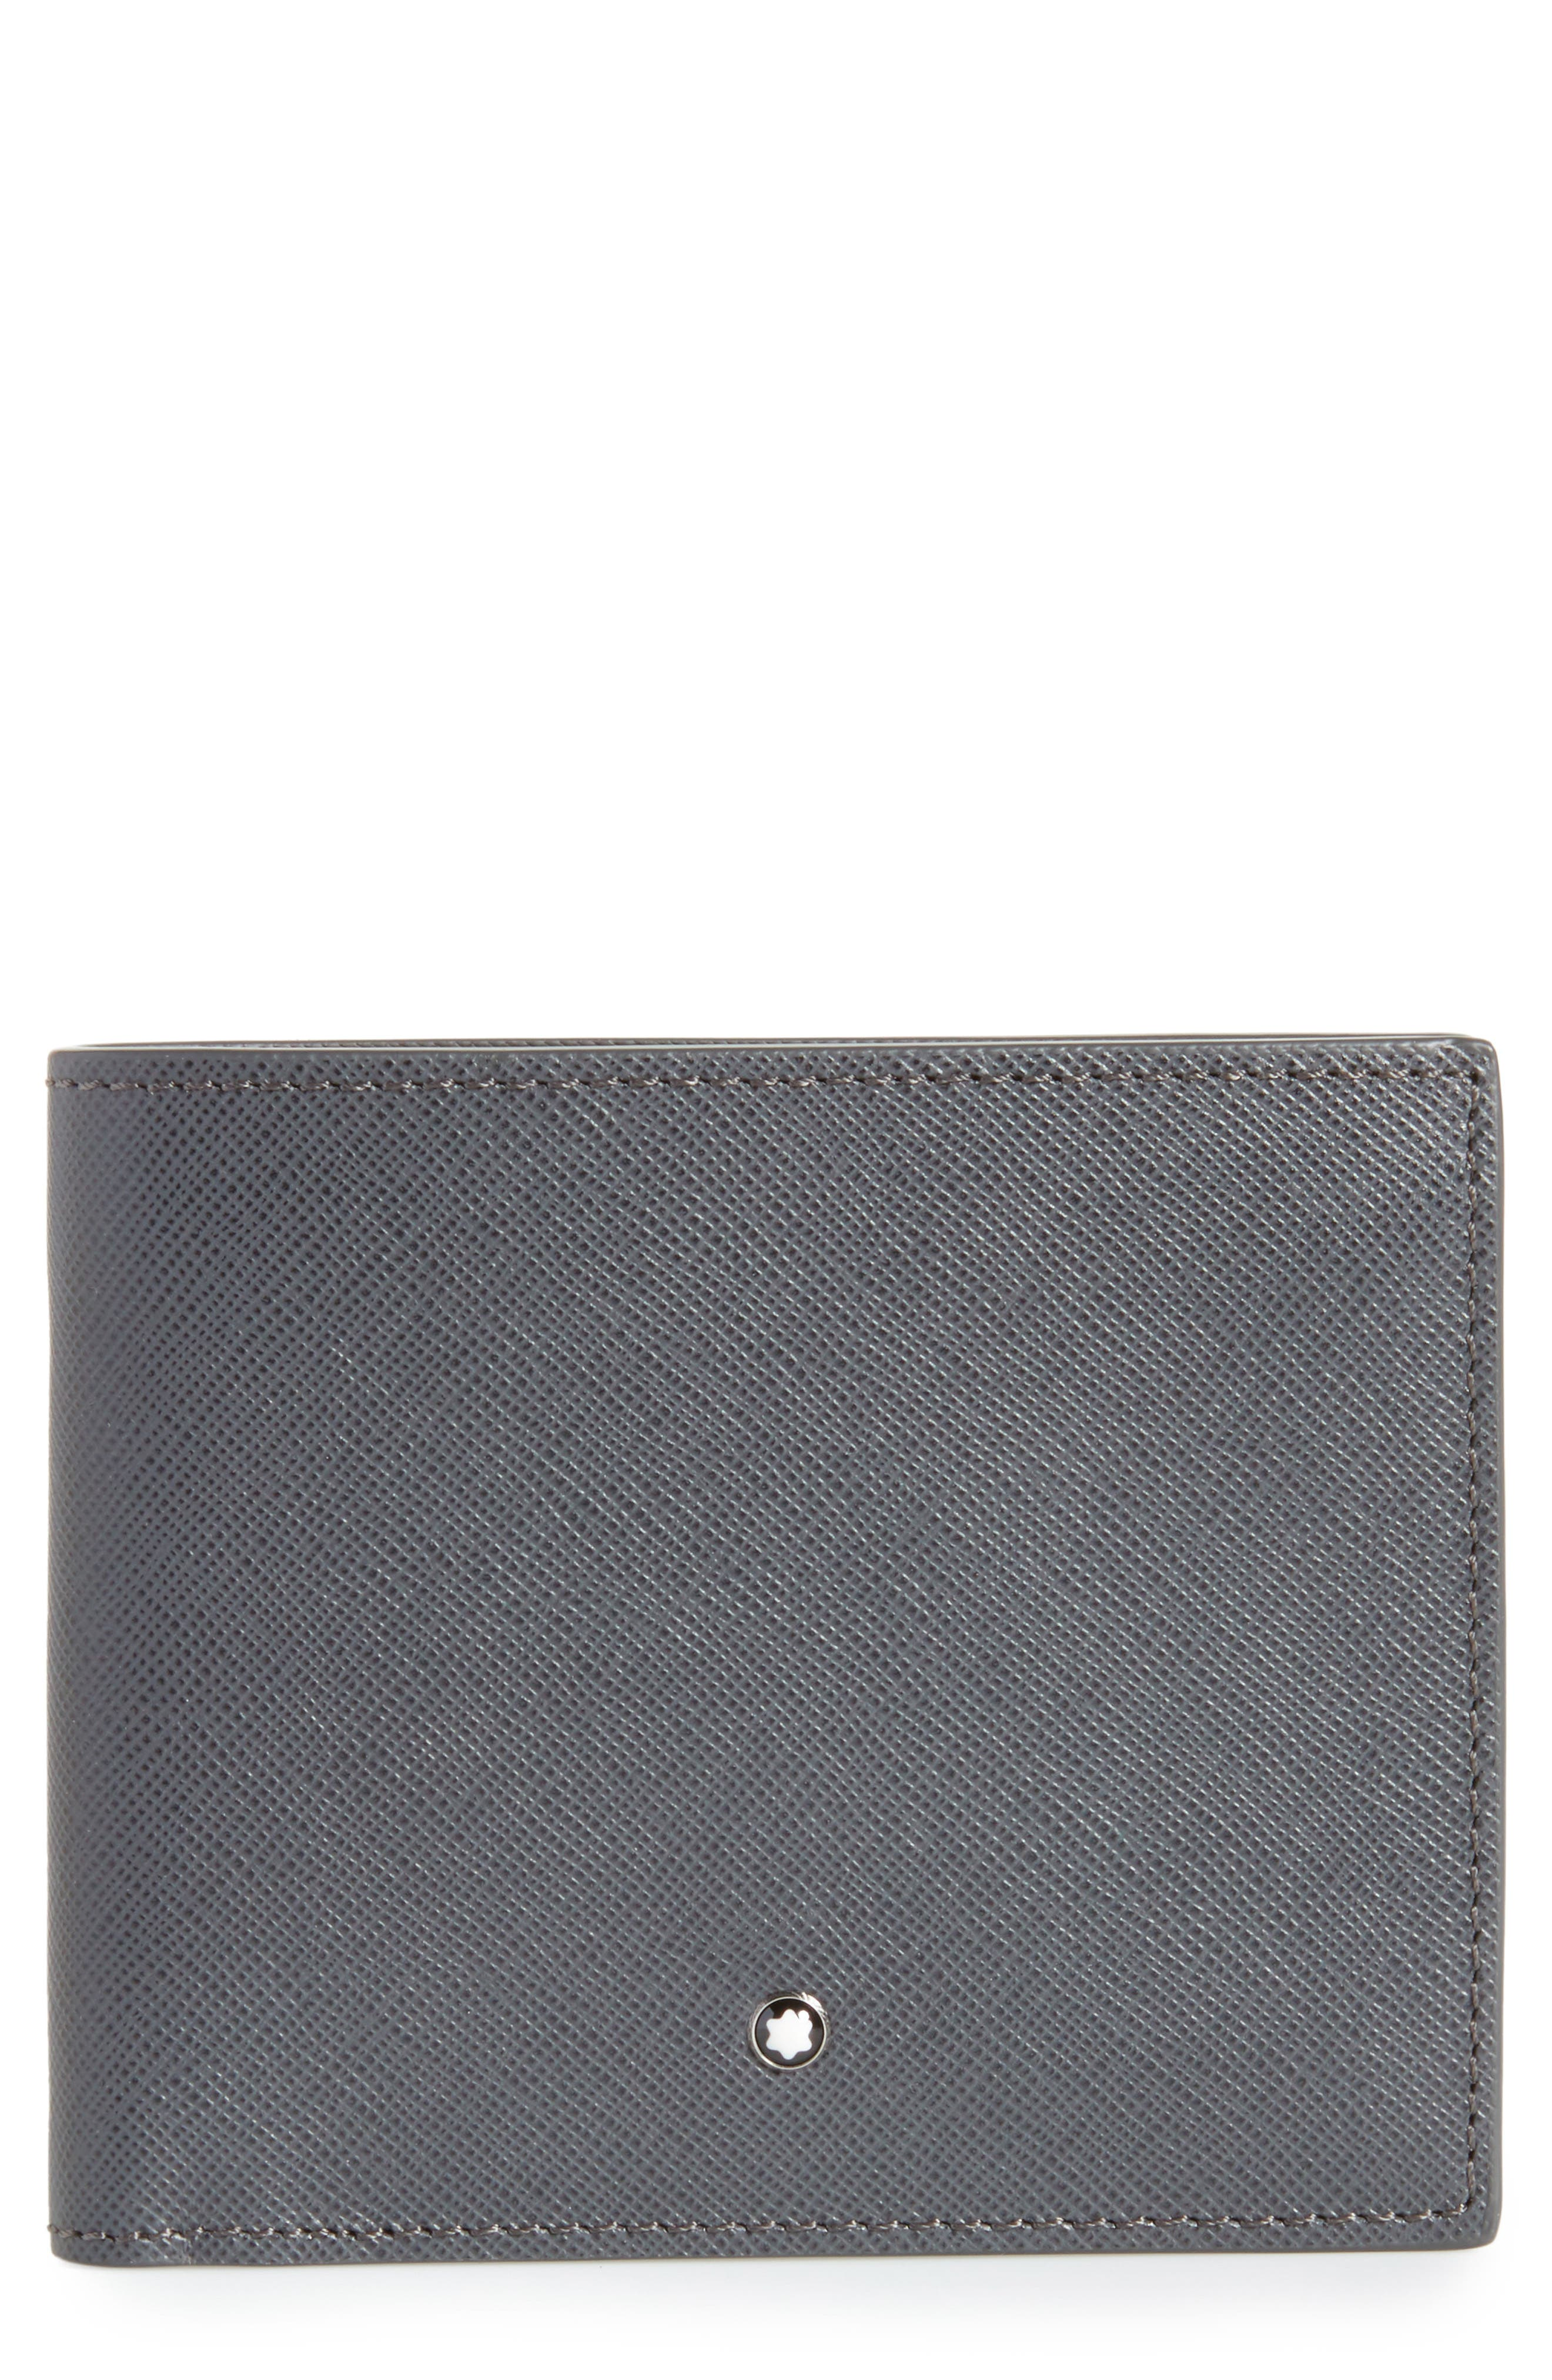 MONTBLANC Sartorial Leather Bifold Wallet, Main, color, 020